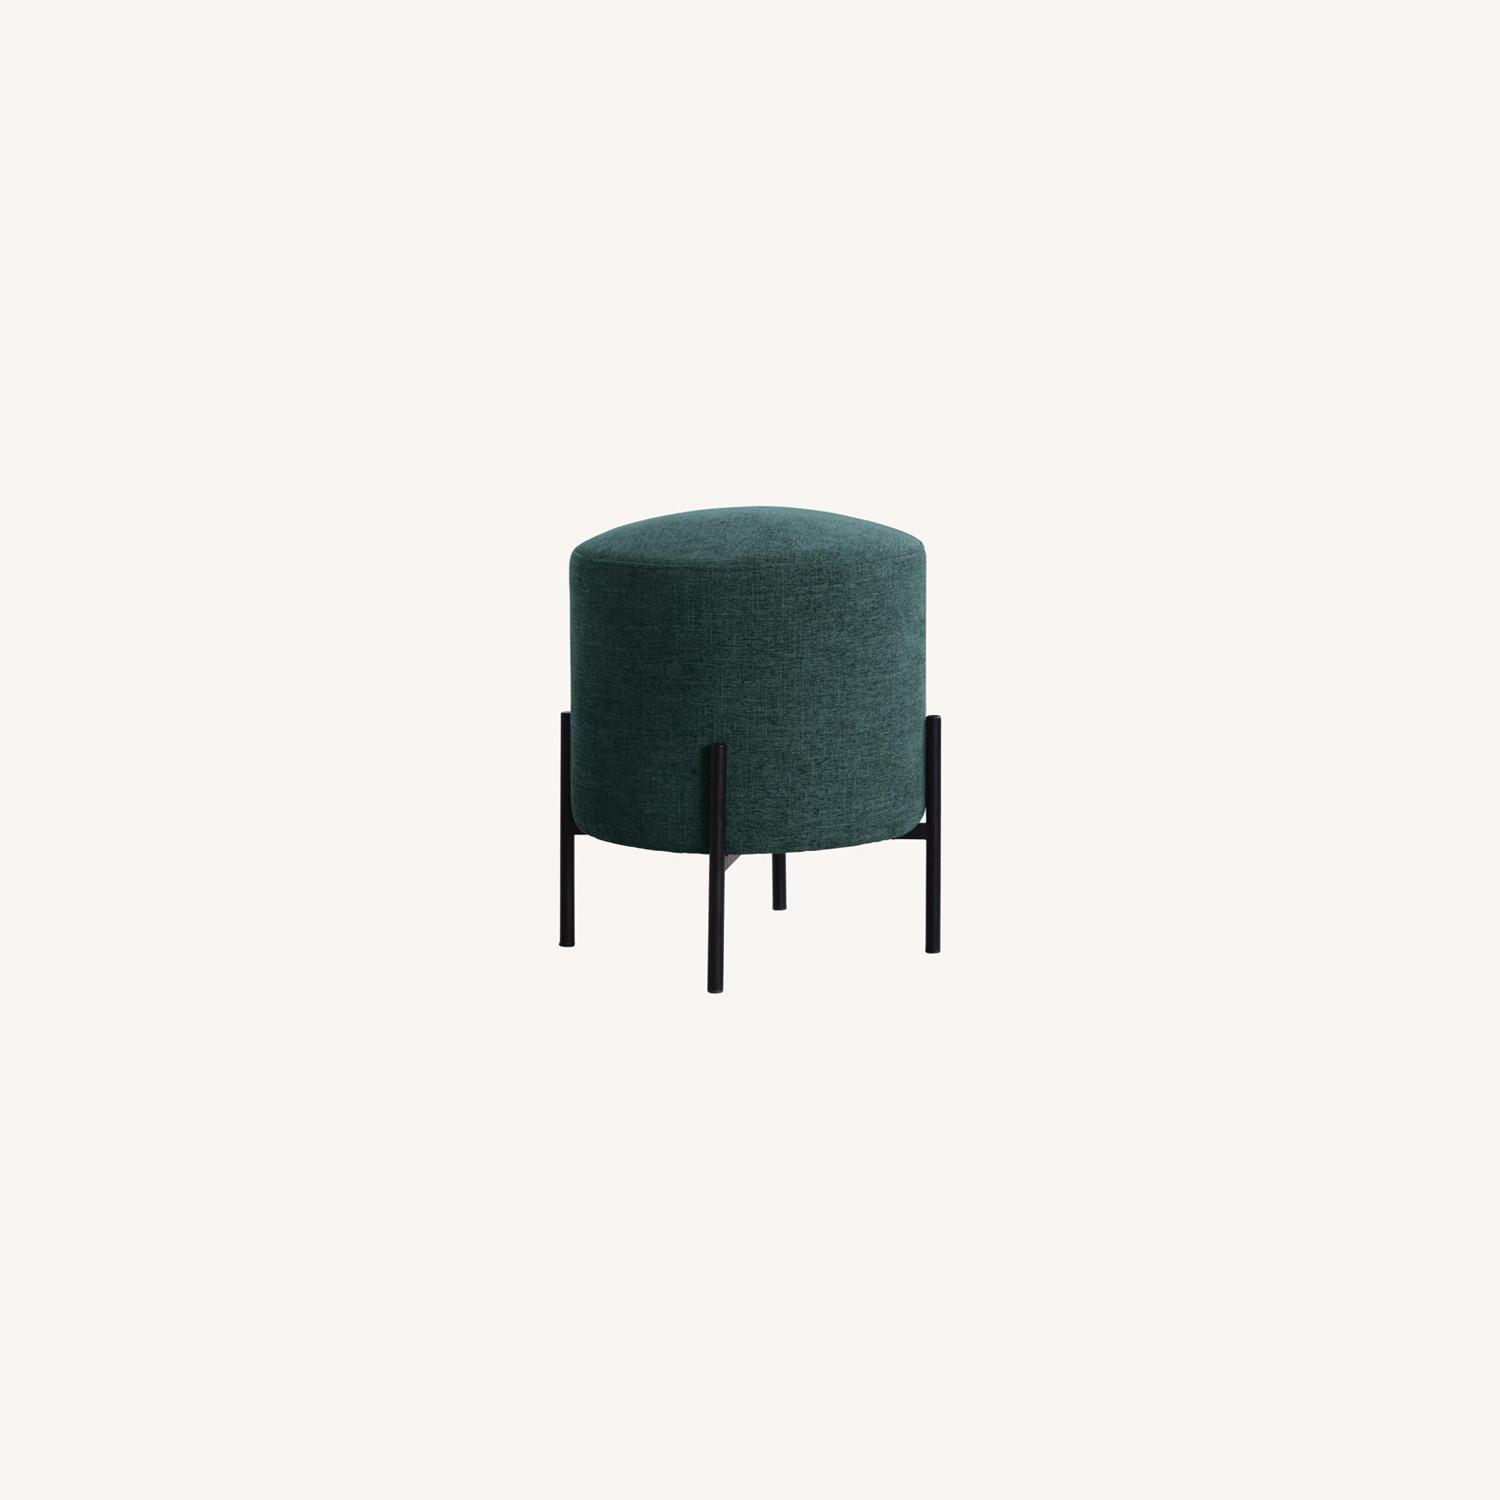 Ottoman In Teal & Chenille Upholstery W/Black Legs - image-3